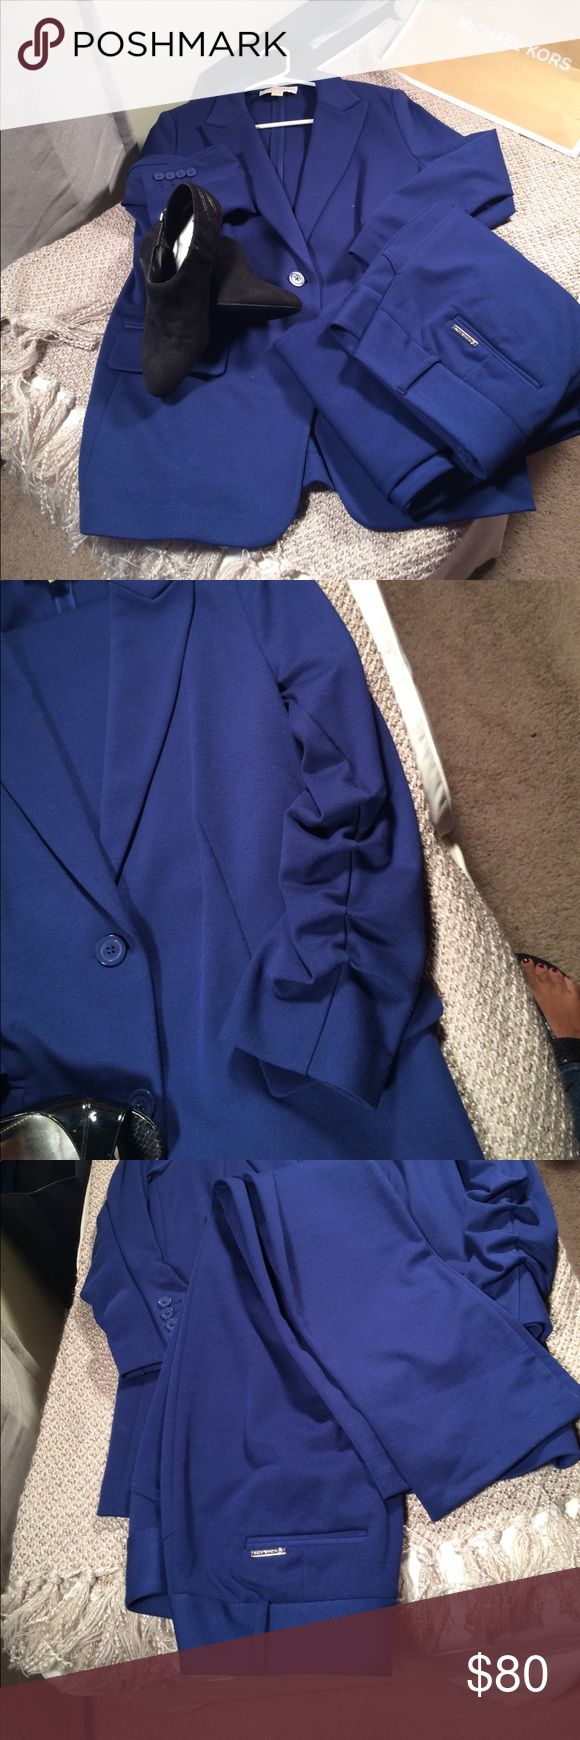 Michael Kors suit/ Brand new condition This beautiful suit has only been worn twice brand new condition original and authentic Michael Kors suit. Beautiful blue color. It's in between a royal blue and navy. Has stretch in the jacket and the pants. Straight leg trouser pants inseam measurement is 30 inches. Pants are a size 14 and jacket a large. Don't pass this one up ladies! This one is in great condition and pennies on the dollar! Michael Kors Pants Straight Leg